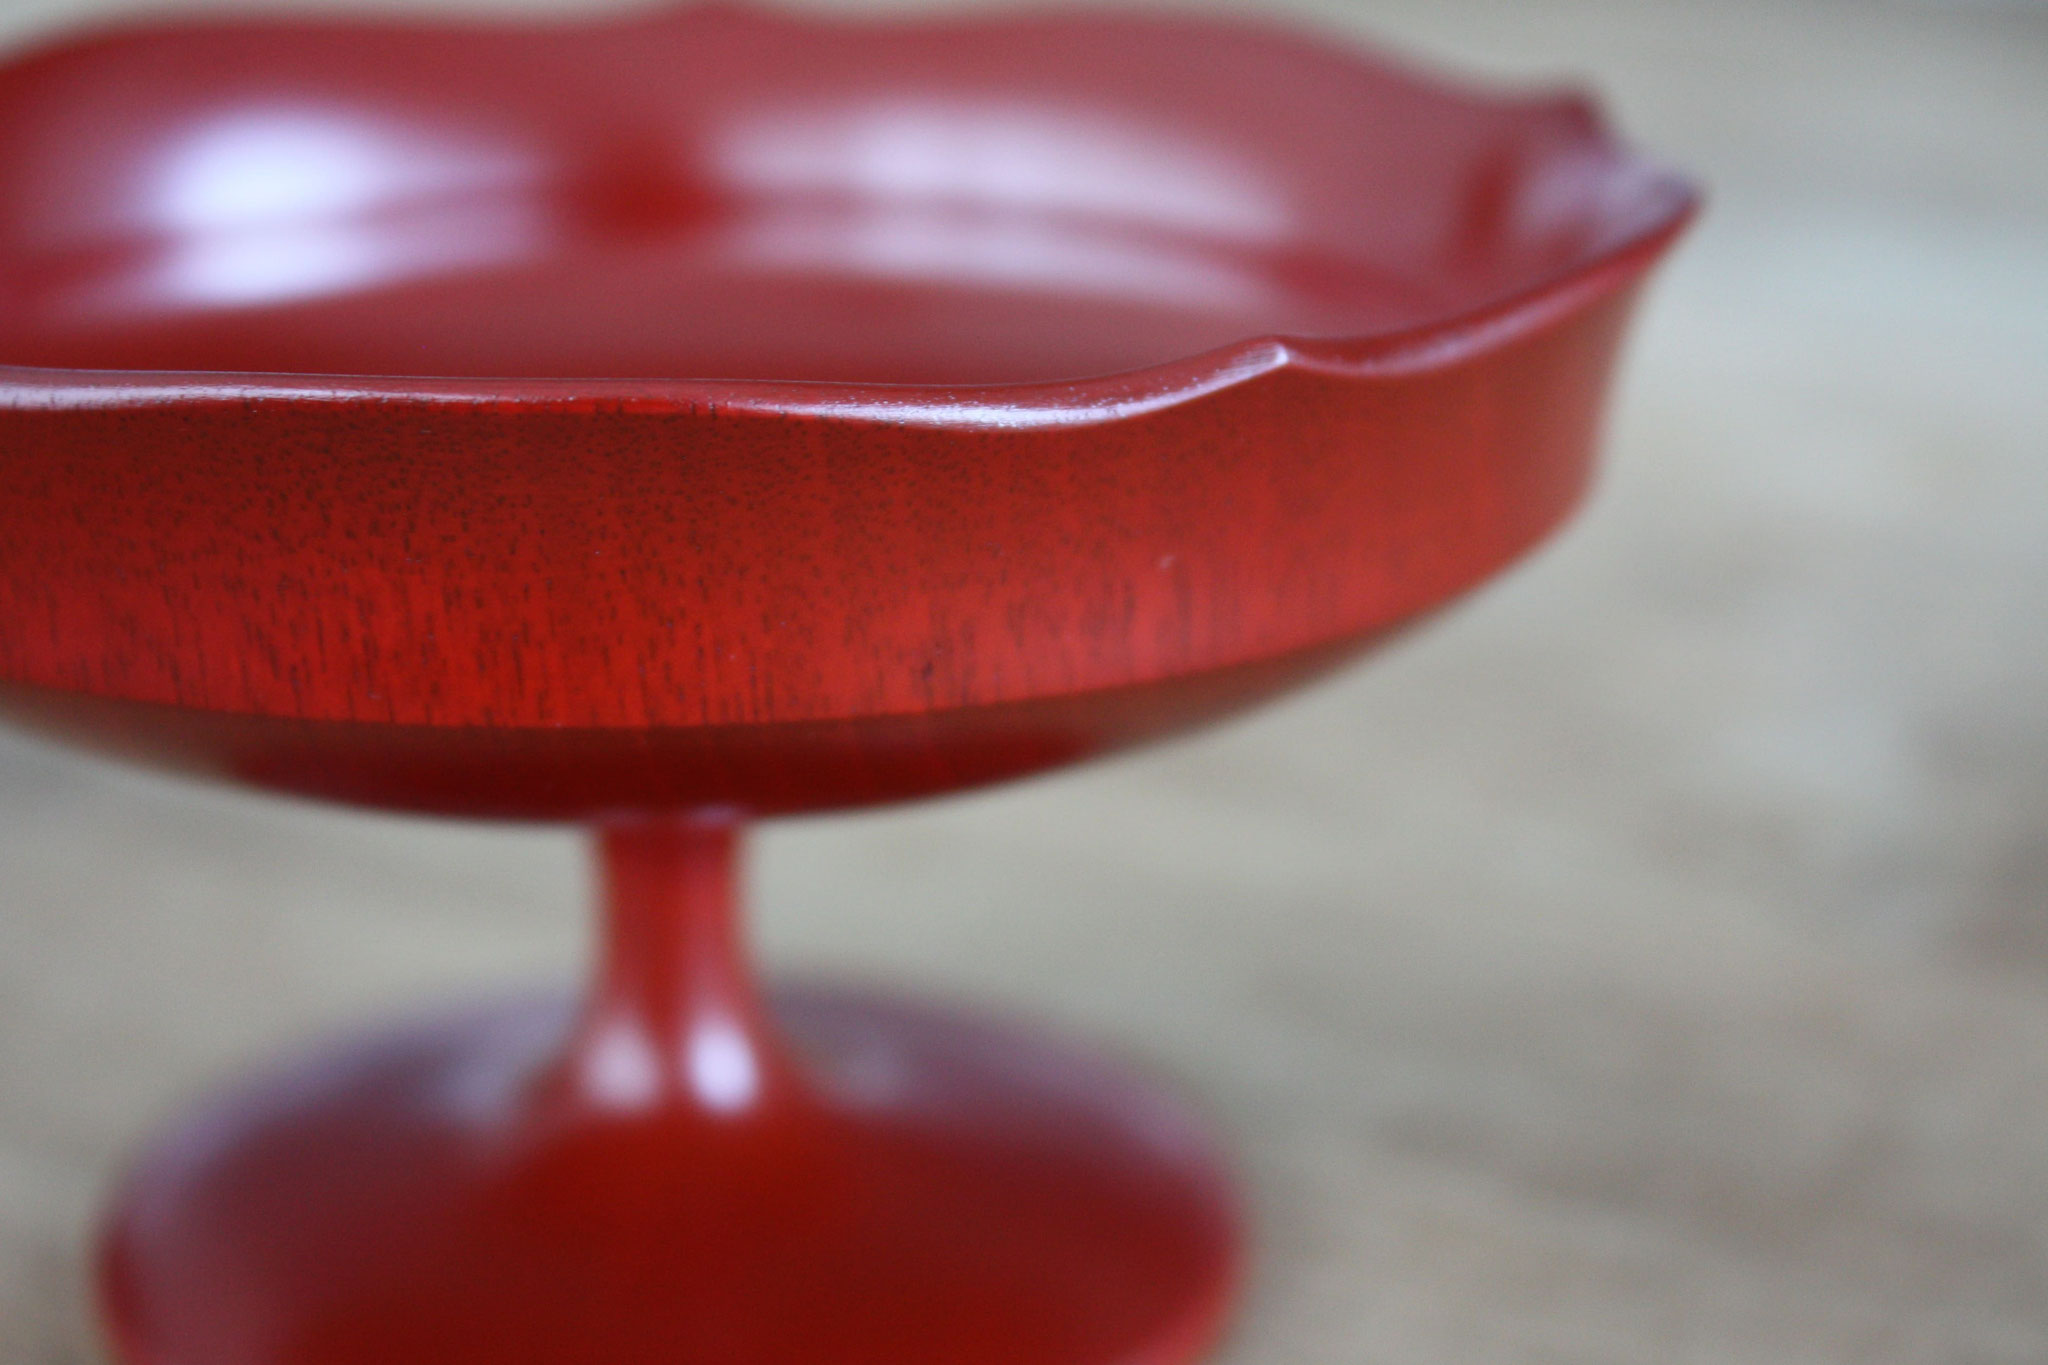 compote stand by Maiko Okuno